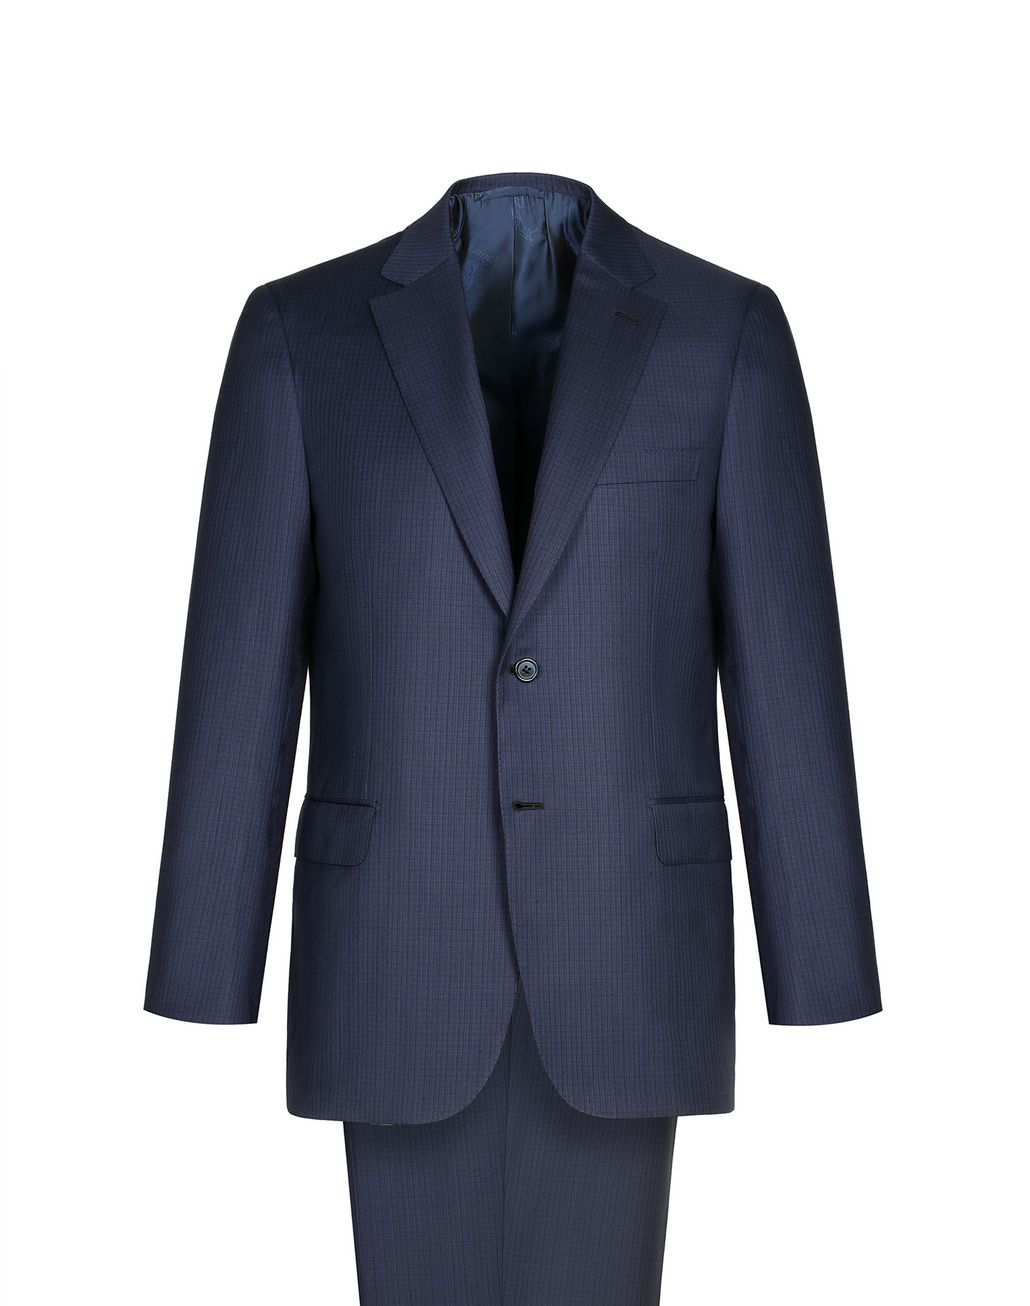 BRIONI Navy Blue Micro-Check Herringbone Ventiquattro Brunico Suit Suits & Jackets Man f